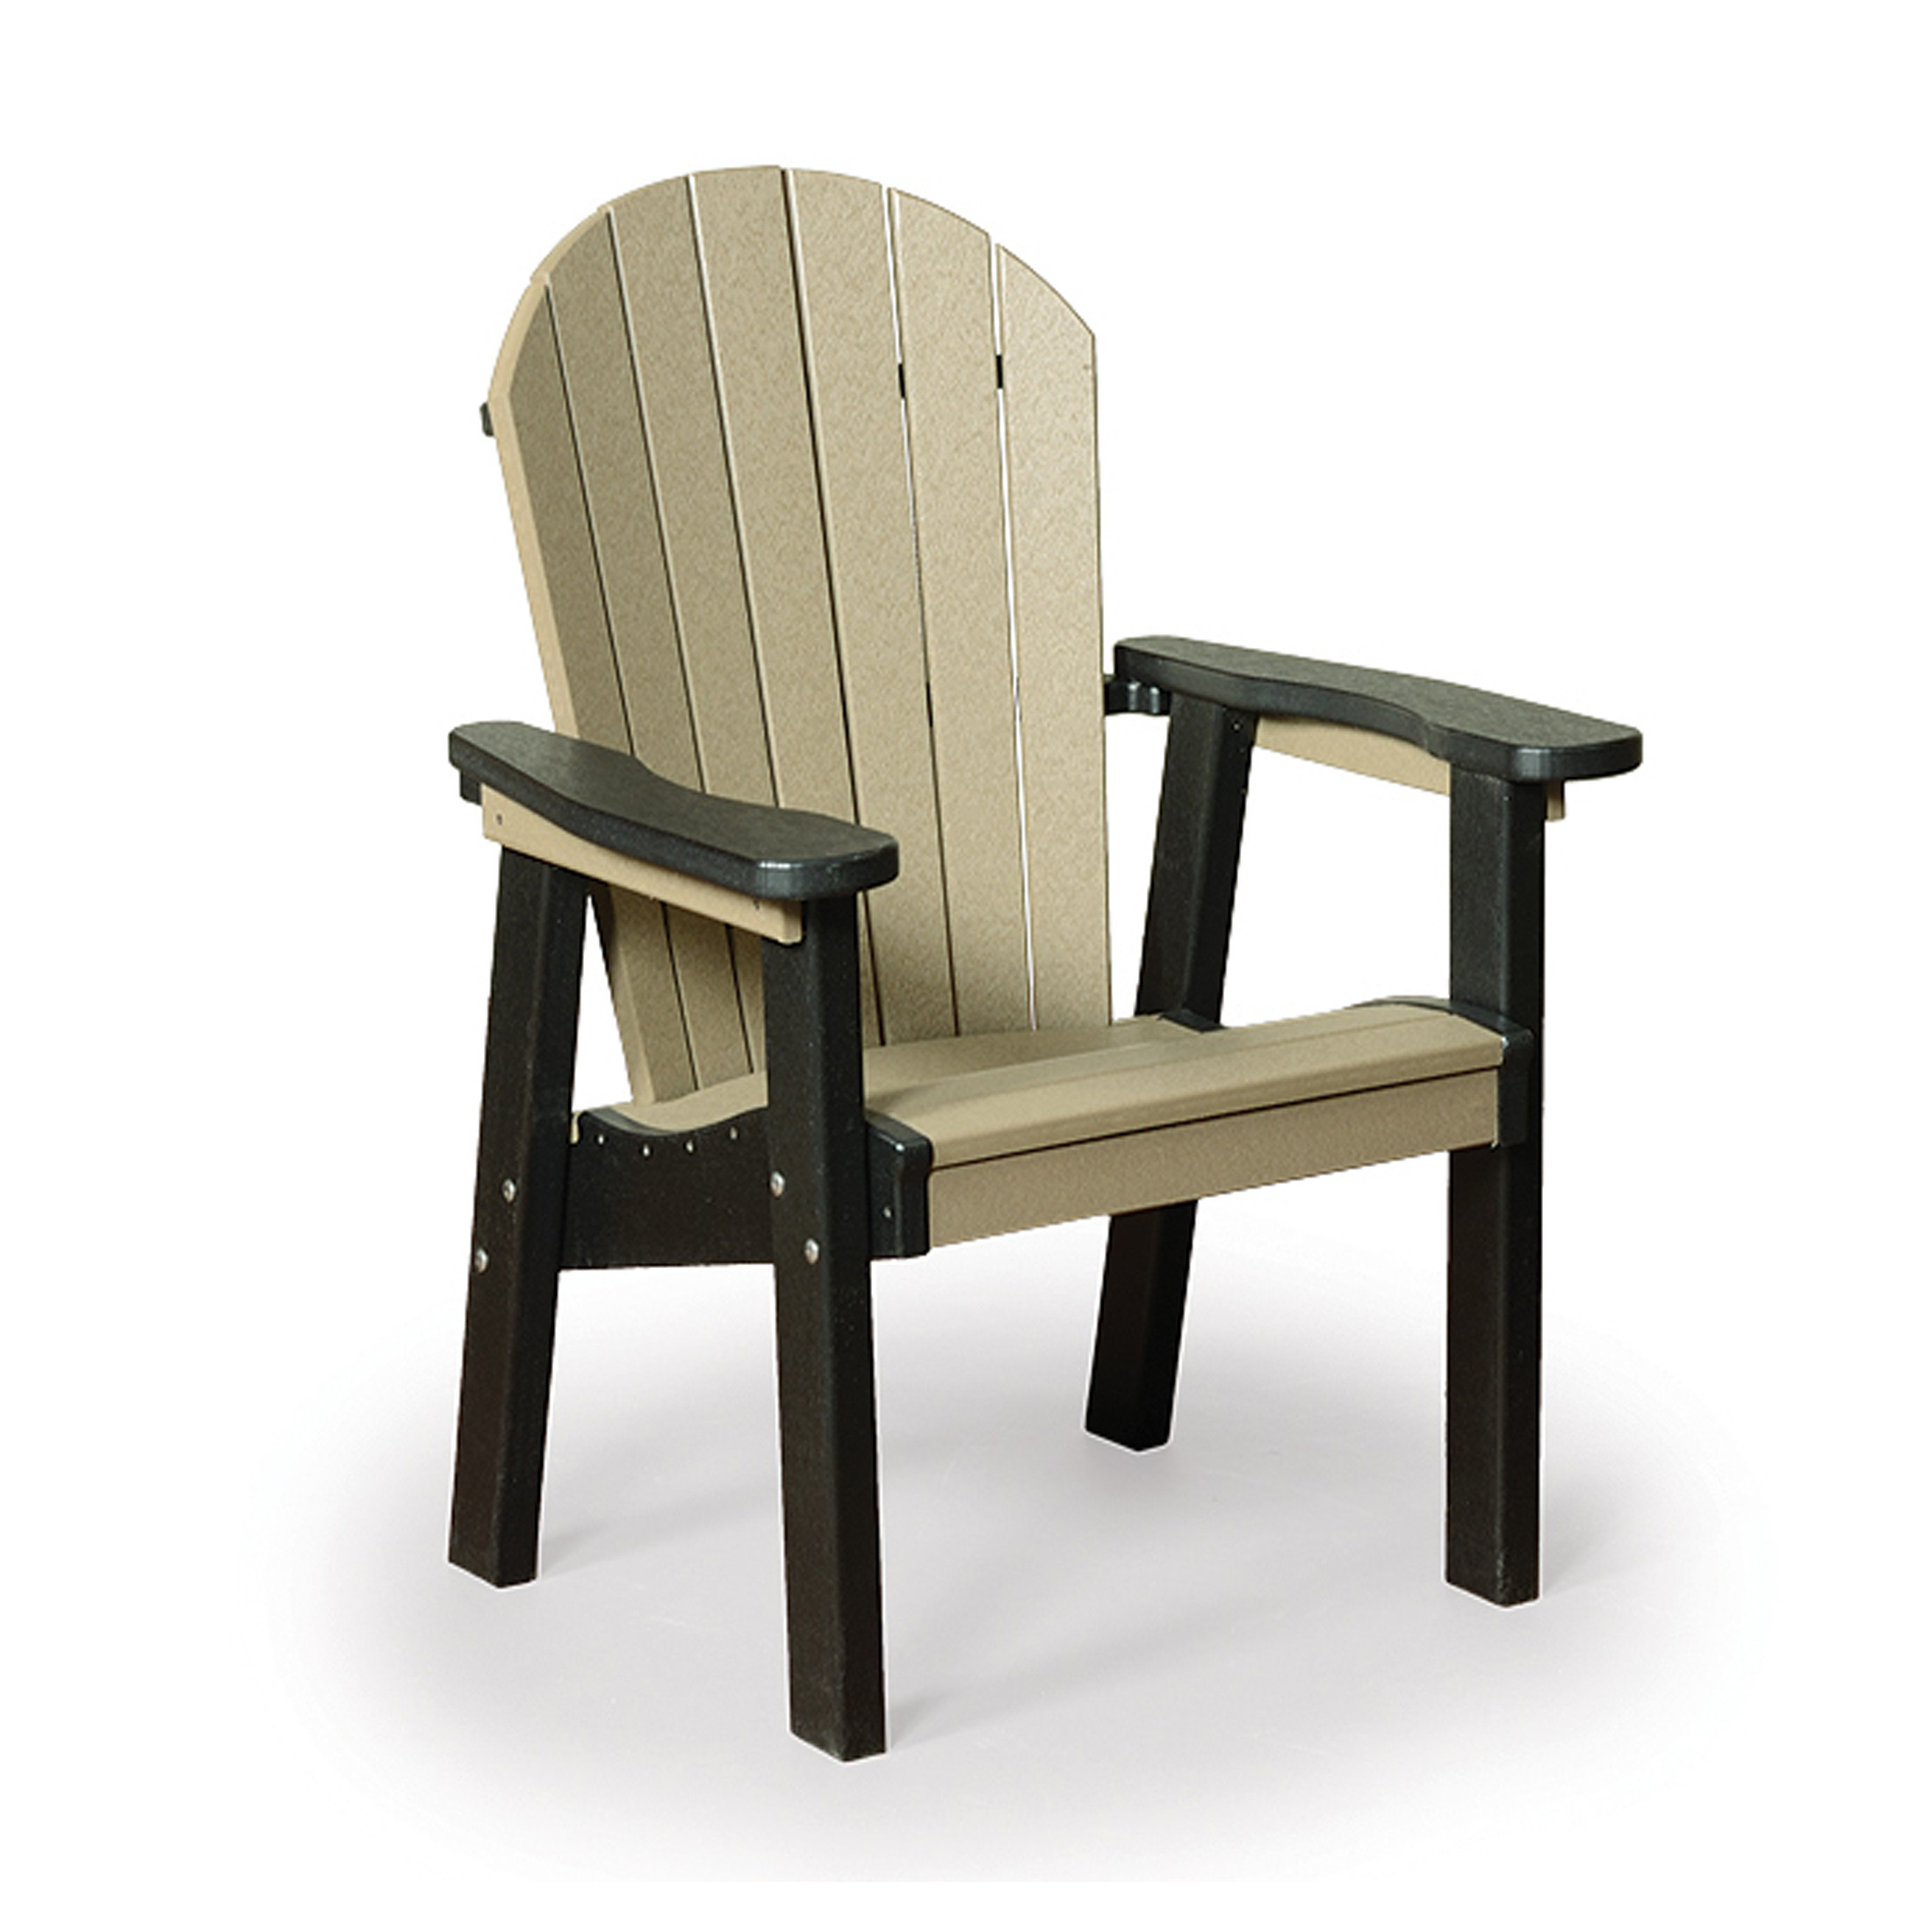 Finch Amish Poly Great Bay Adirondack Dining Chair